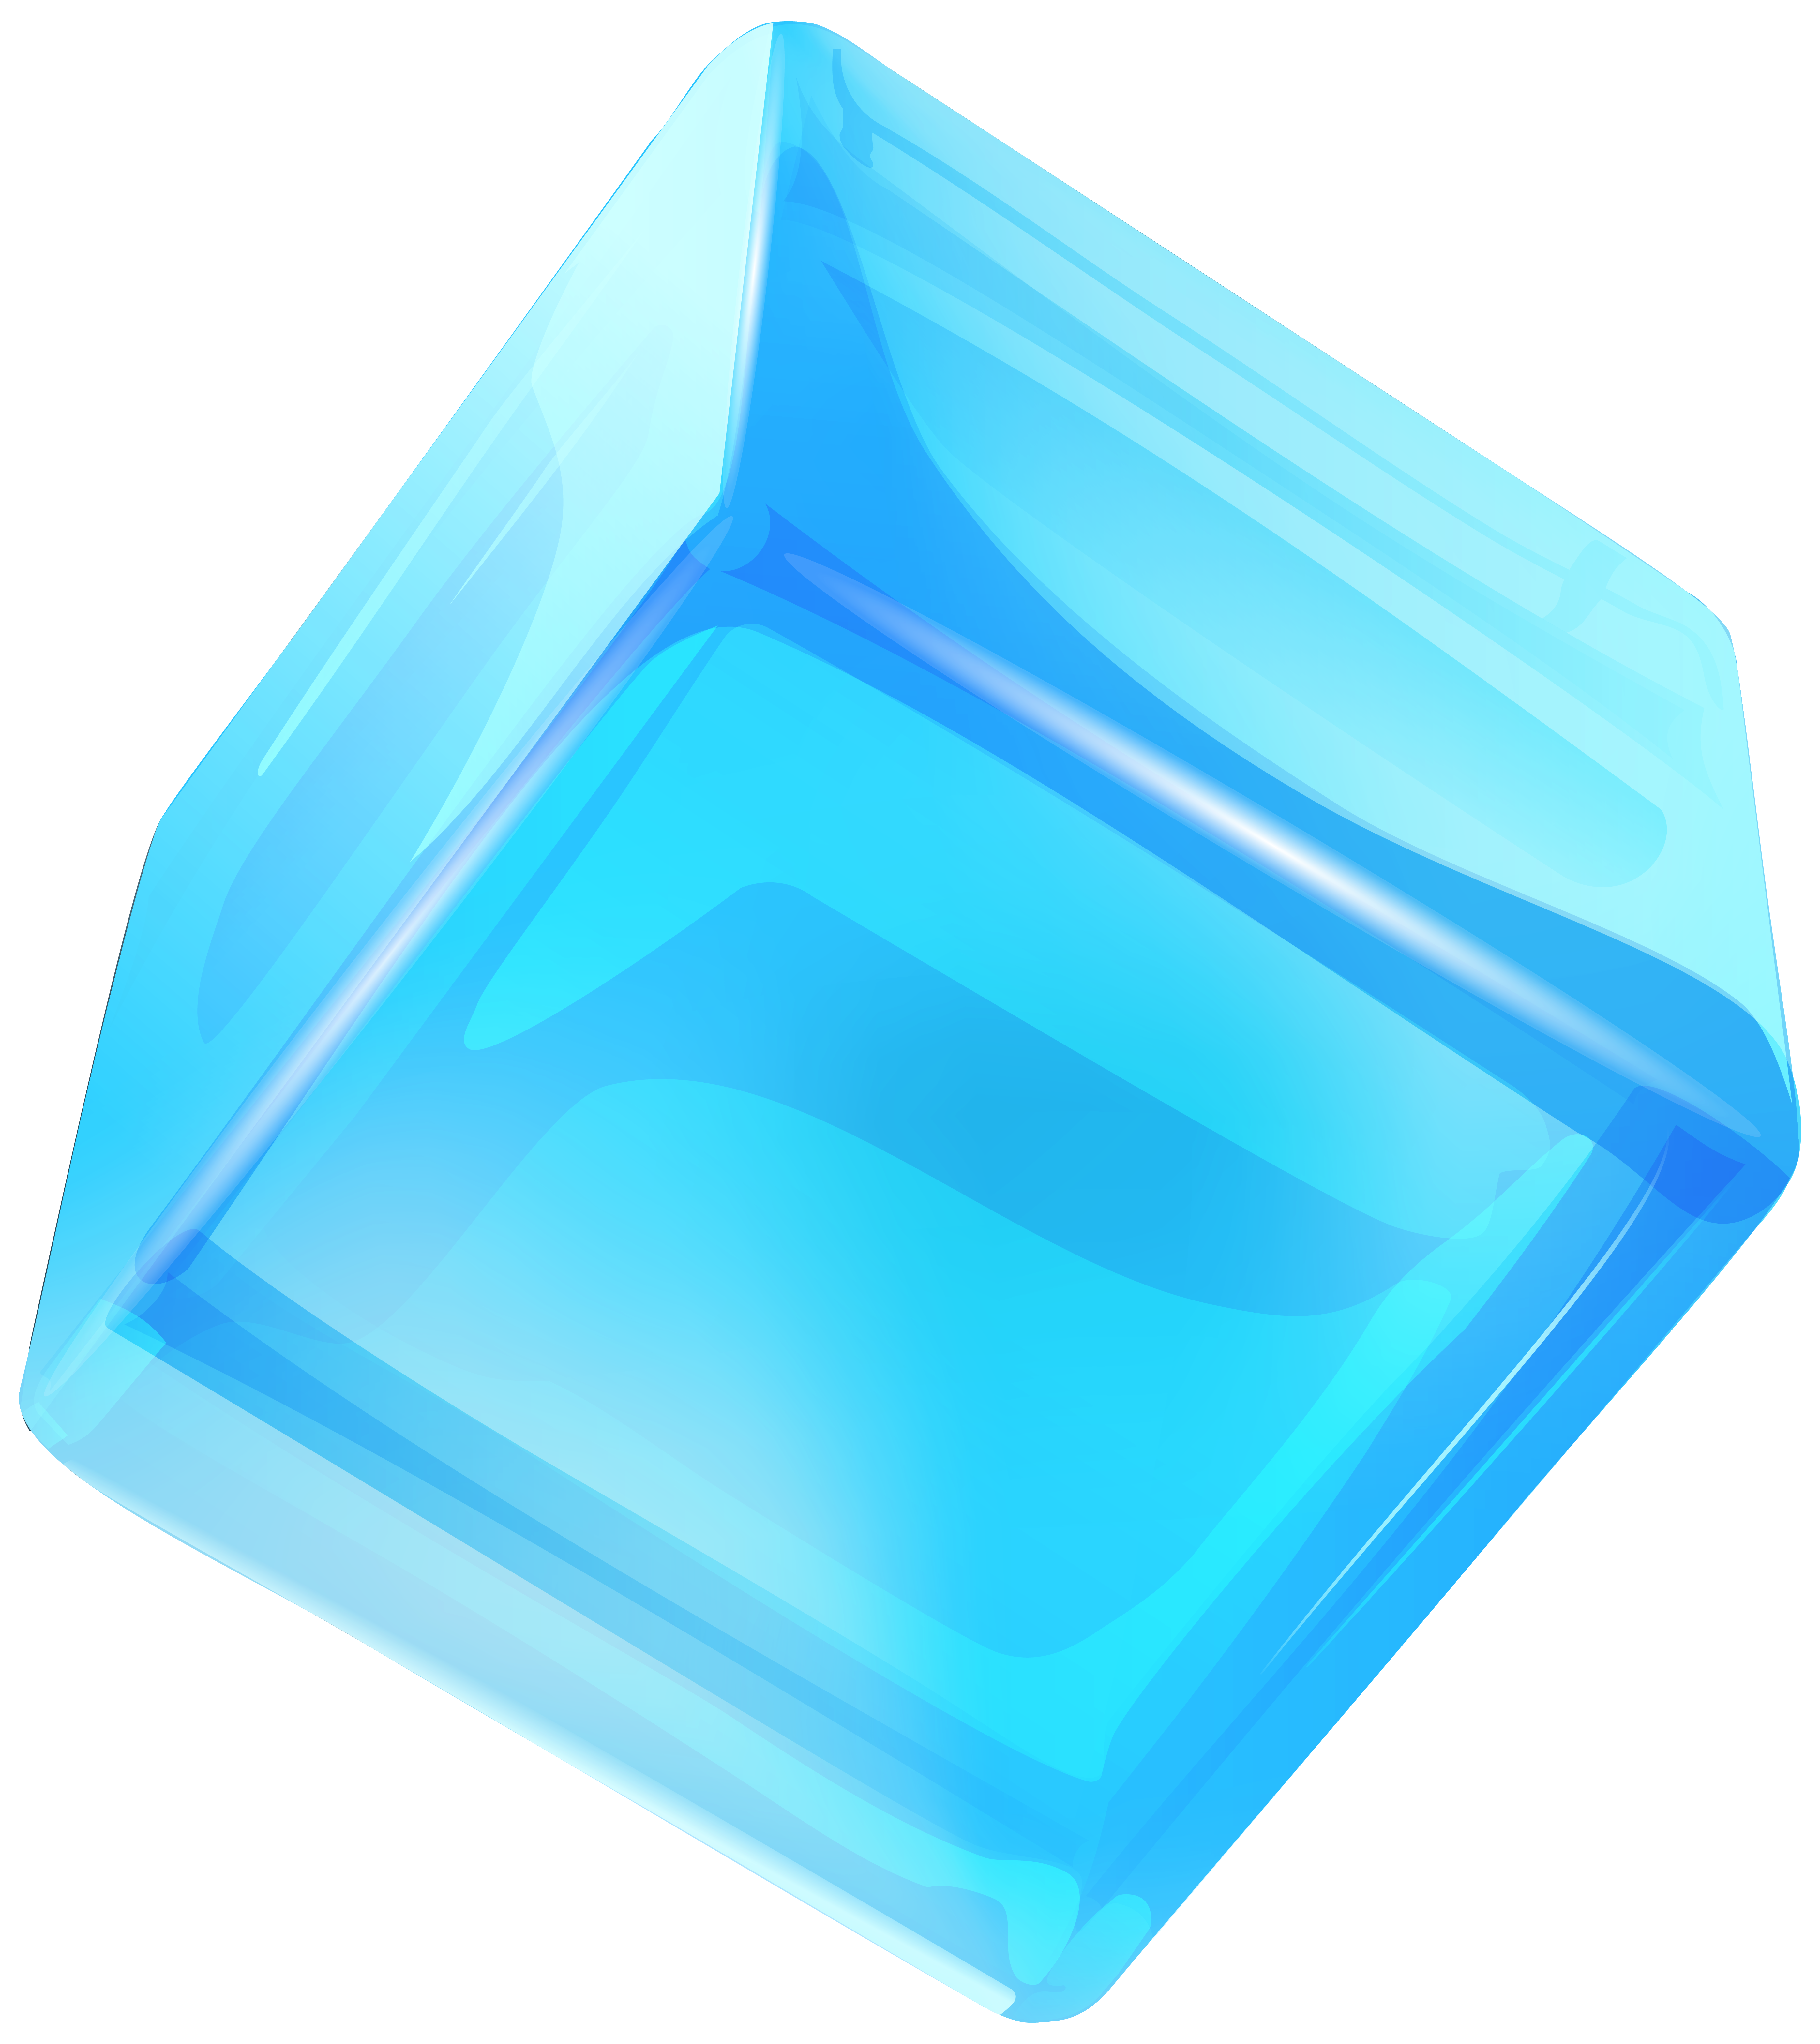 Blue cube png clip. Ice clipart ice box